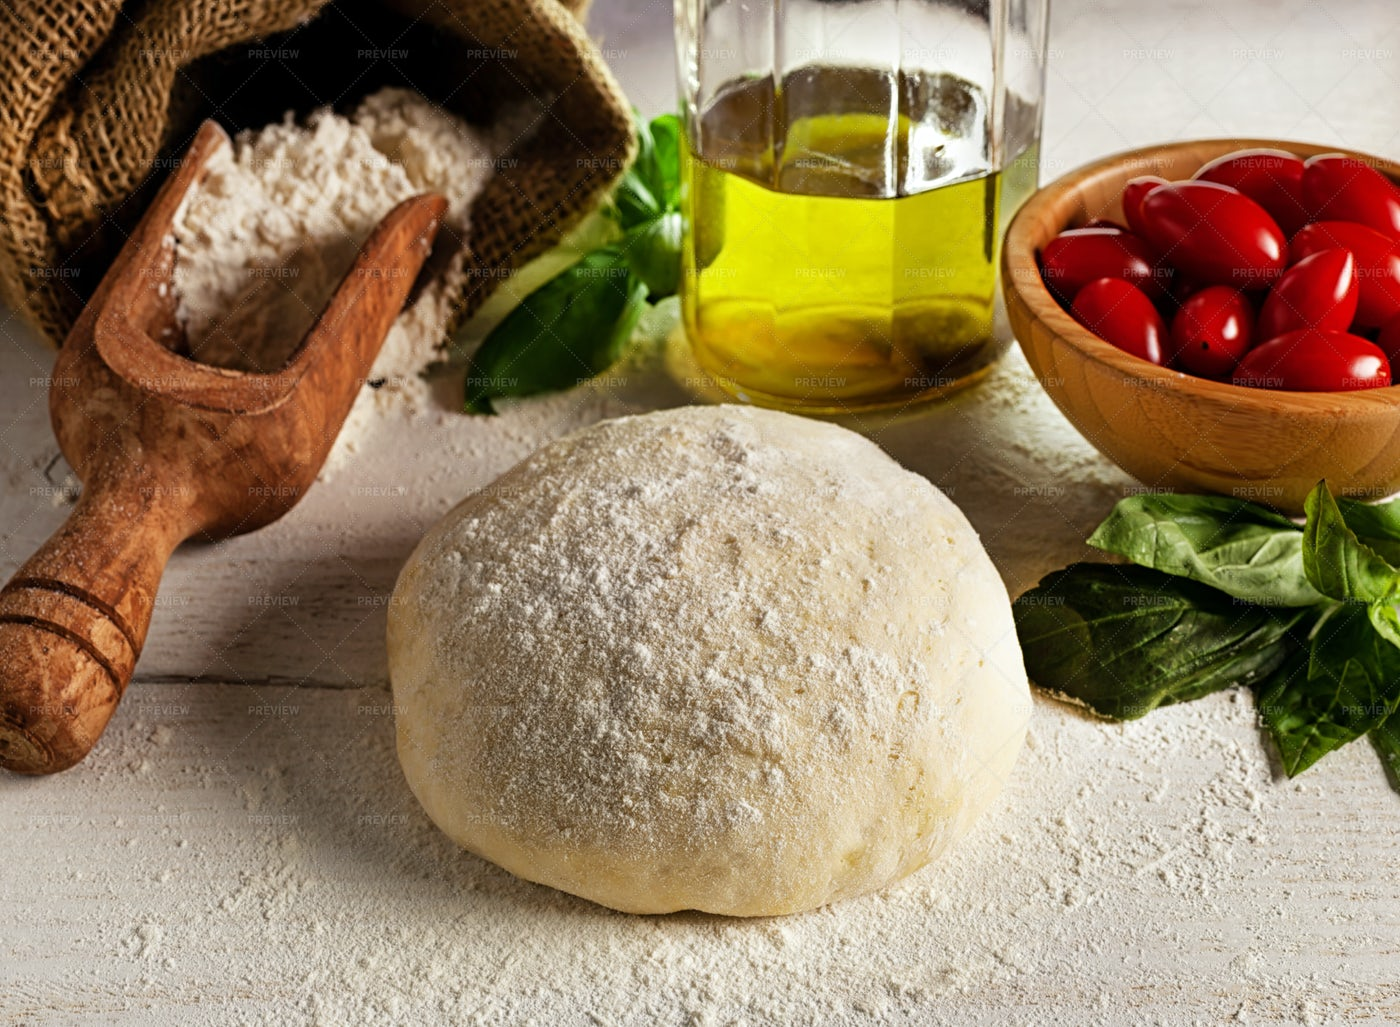 Ingredients For Homemade Pizza: Stock Photos